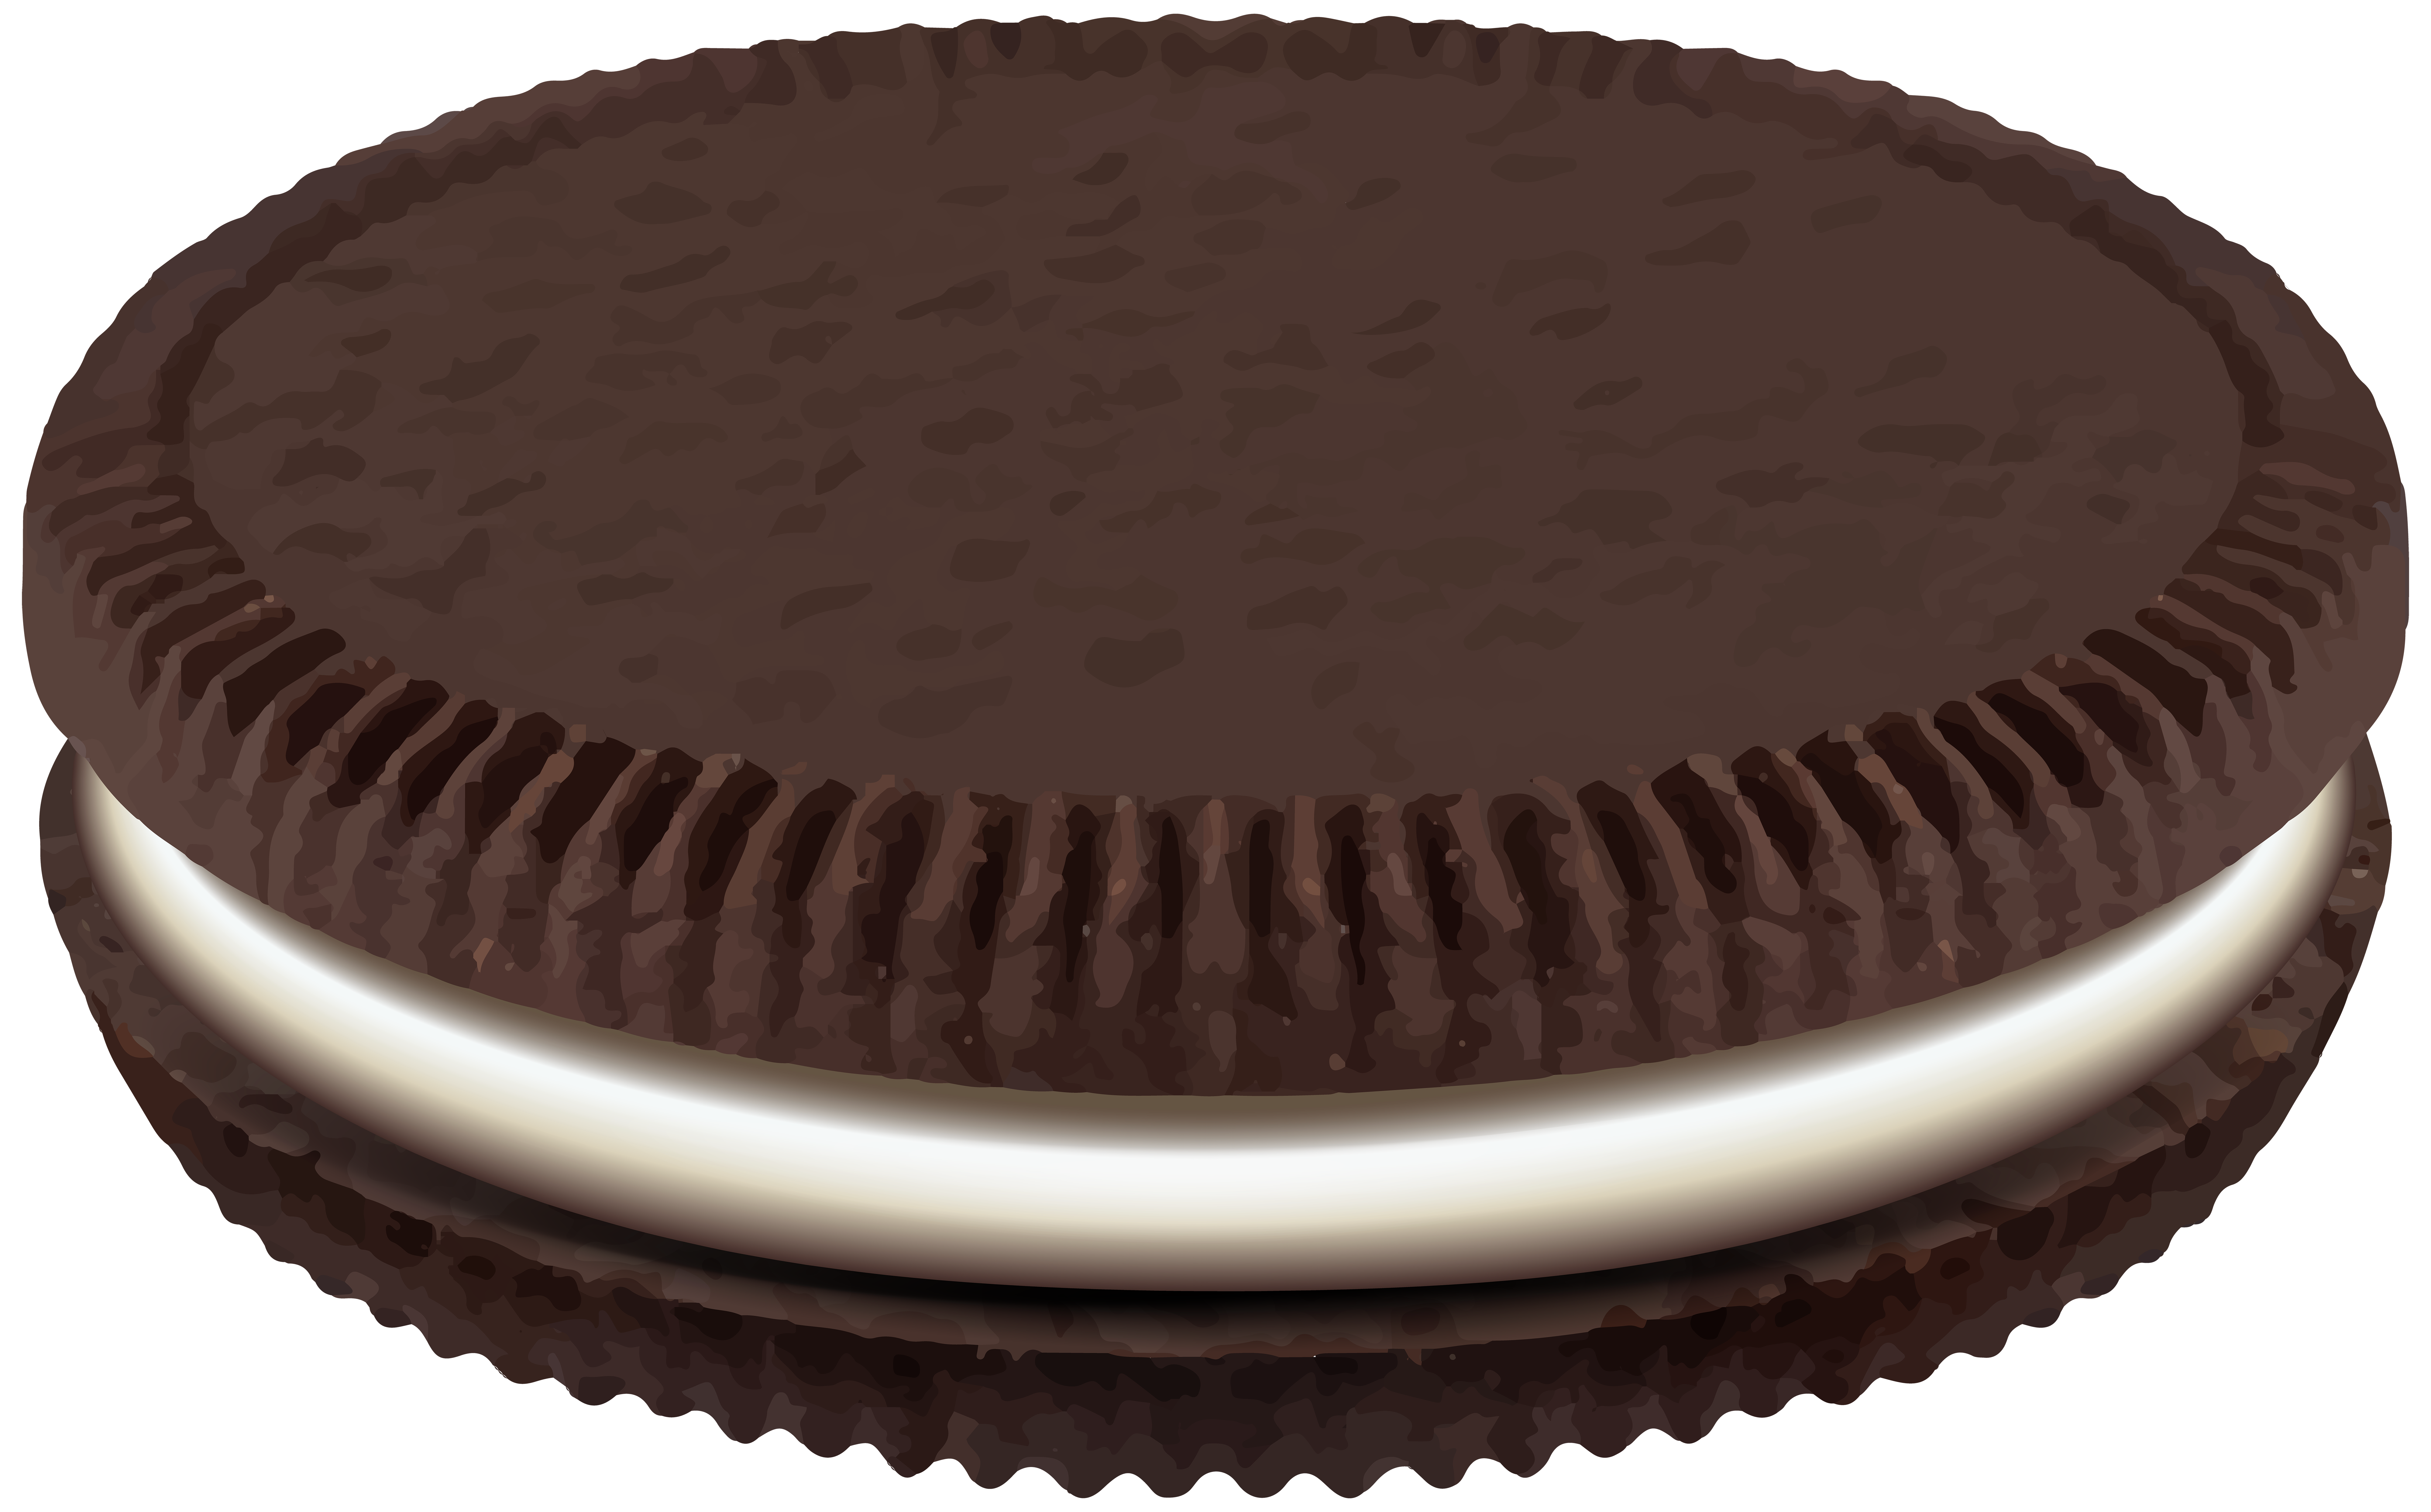 png freeuse stock Oreo clipart. Chocolate sandwich biscuit png